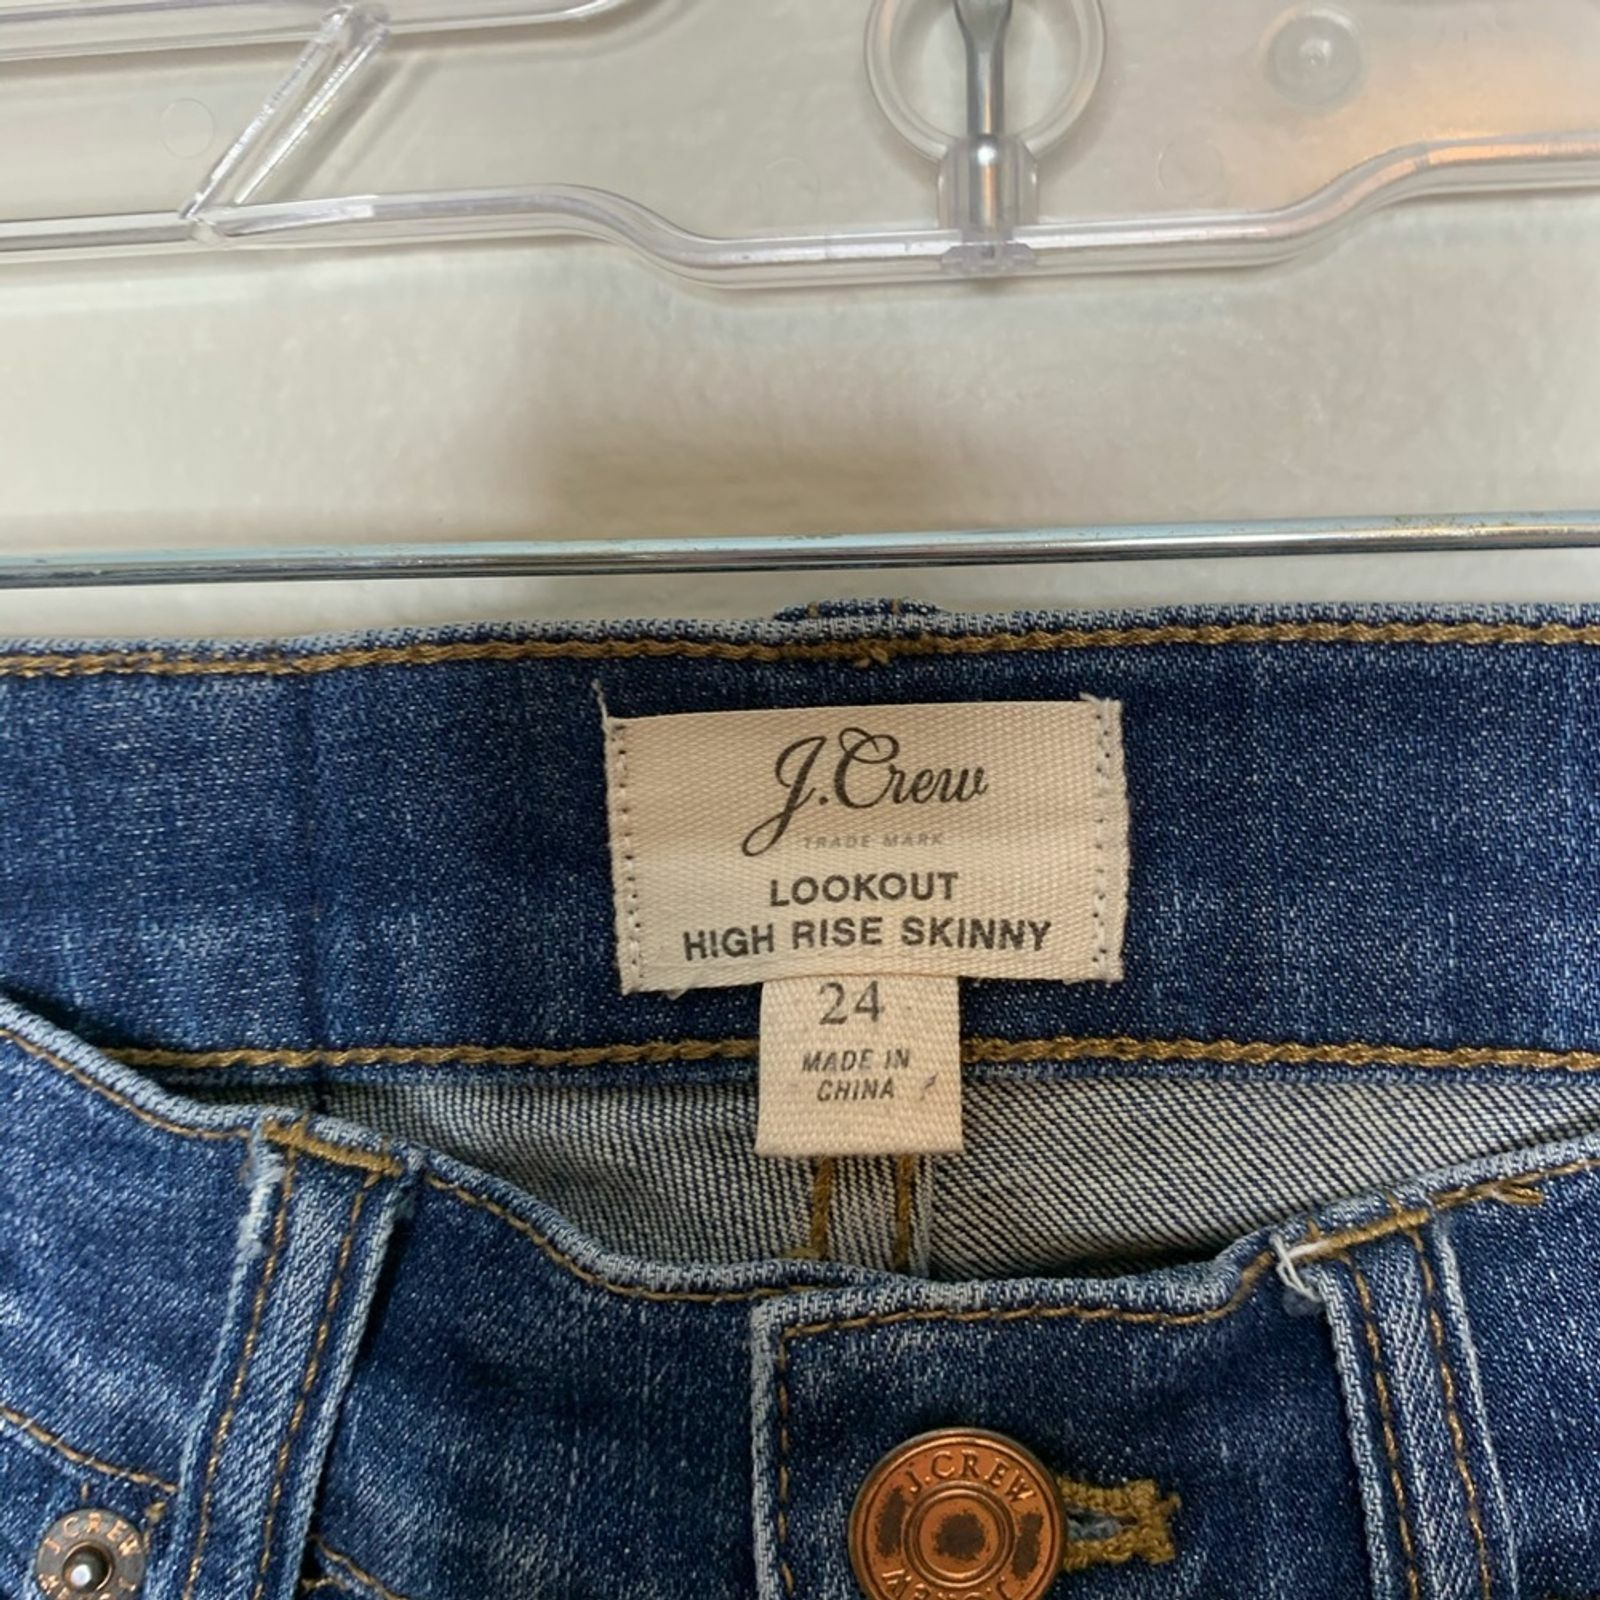 J. Crew Lookout High Rise Skinny Jean Travers Wash - image 6